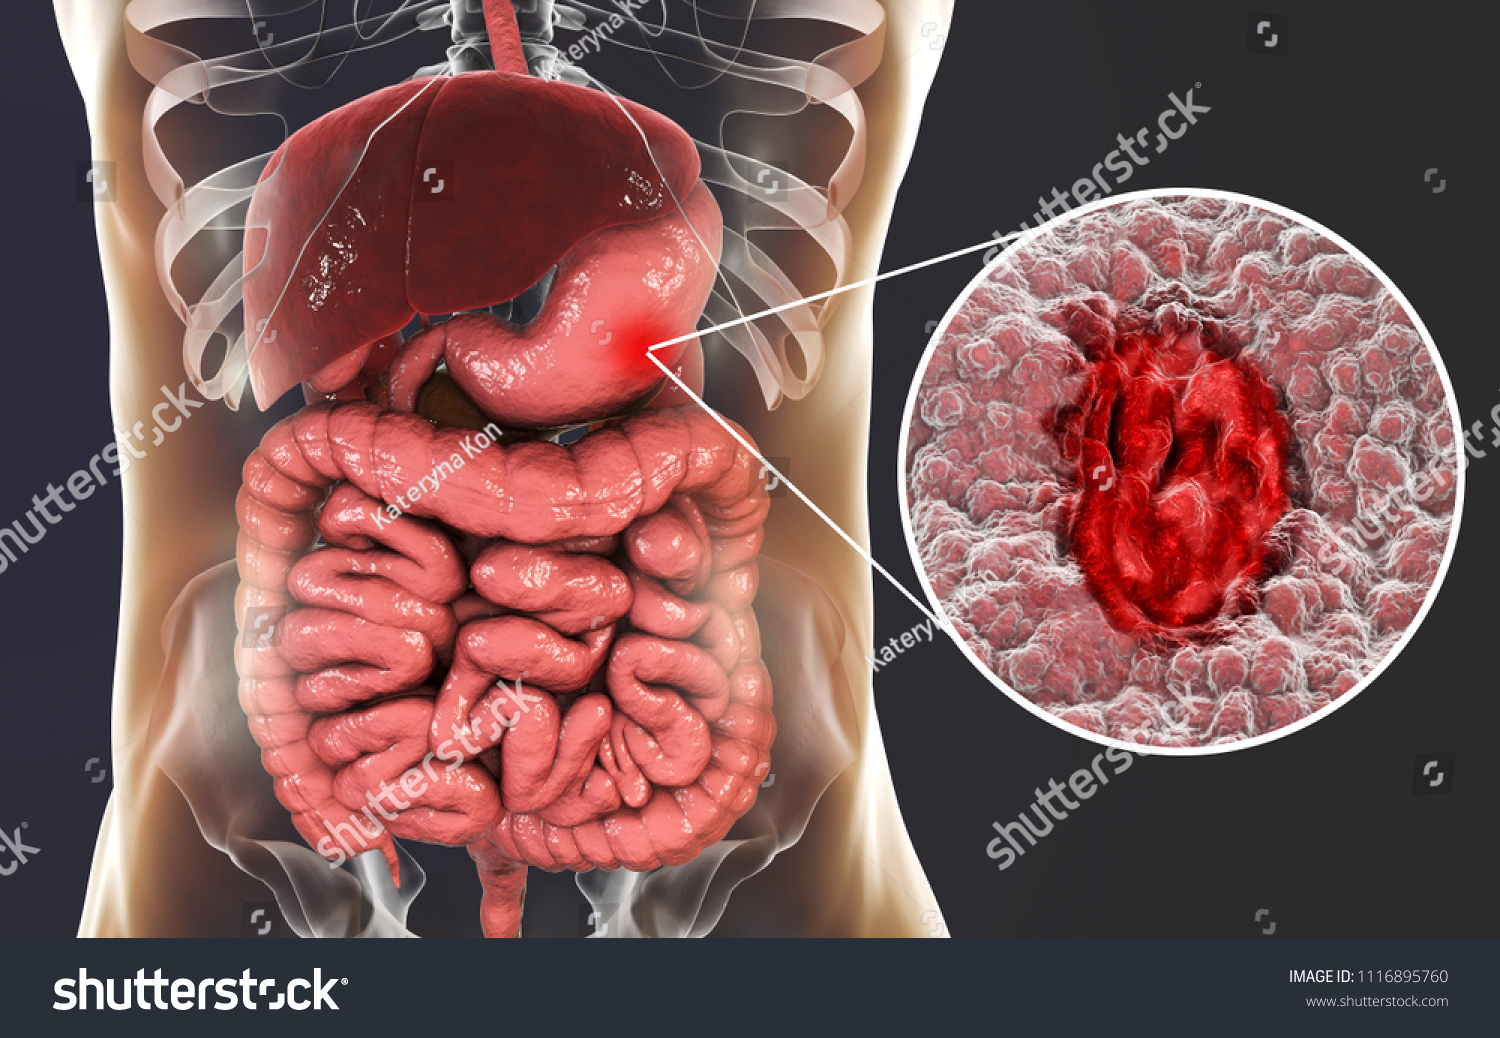 Gastric Ulcer Mucosa Stomach Ulcer Anatomy Stock Illustration